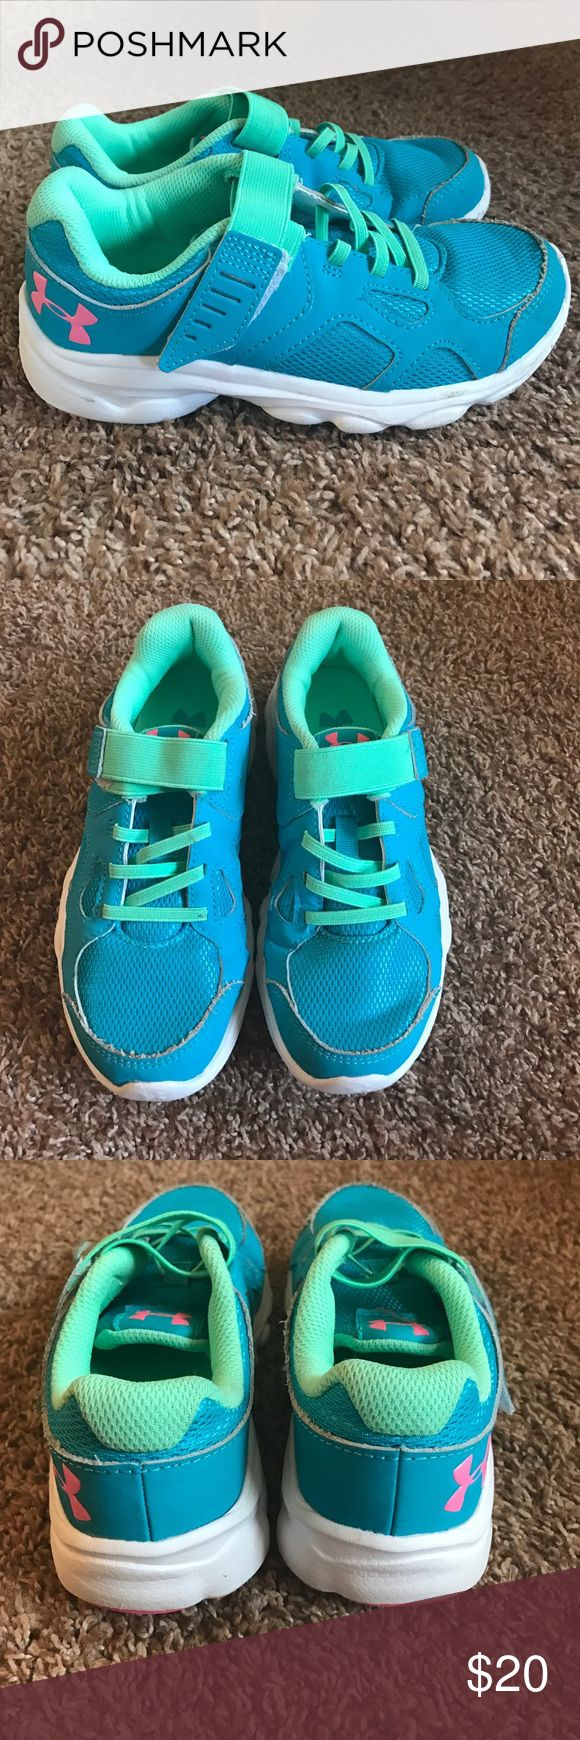 Under Armour Girls Tennis Shoes Very gently used Under Armour Shoes